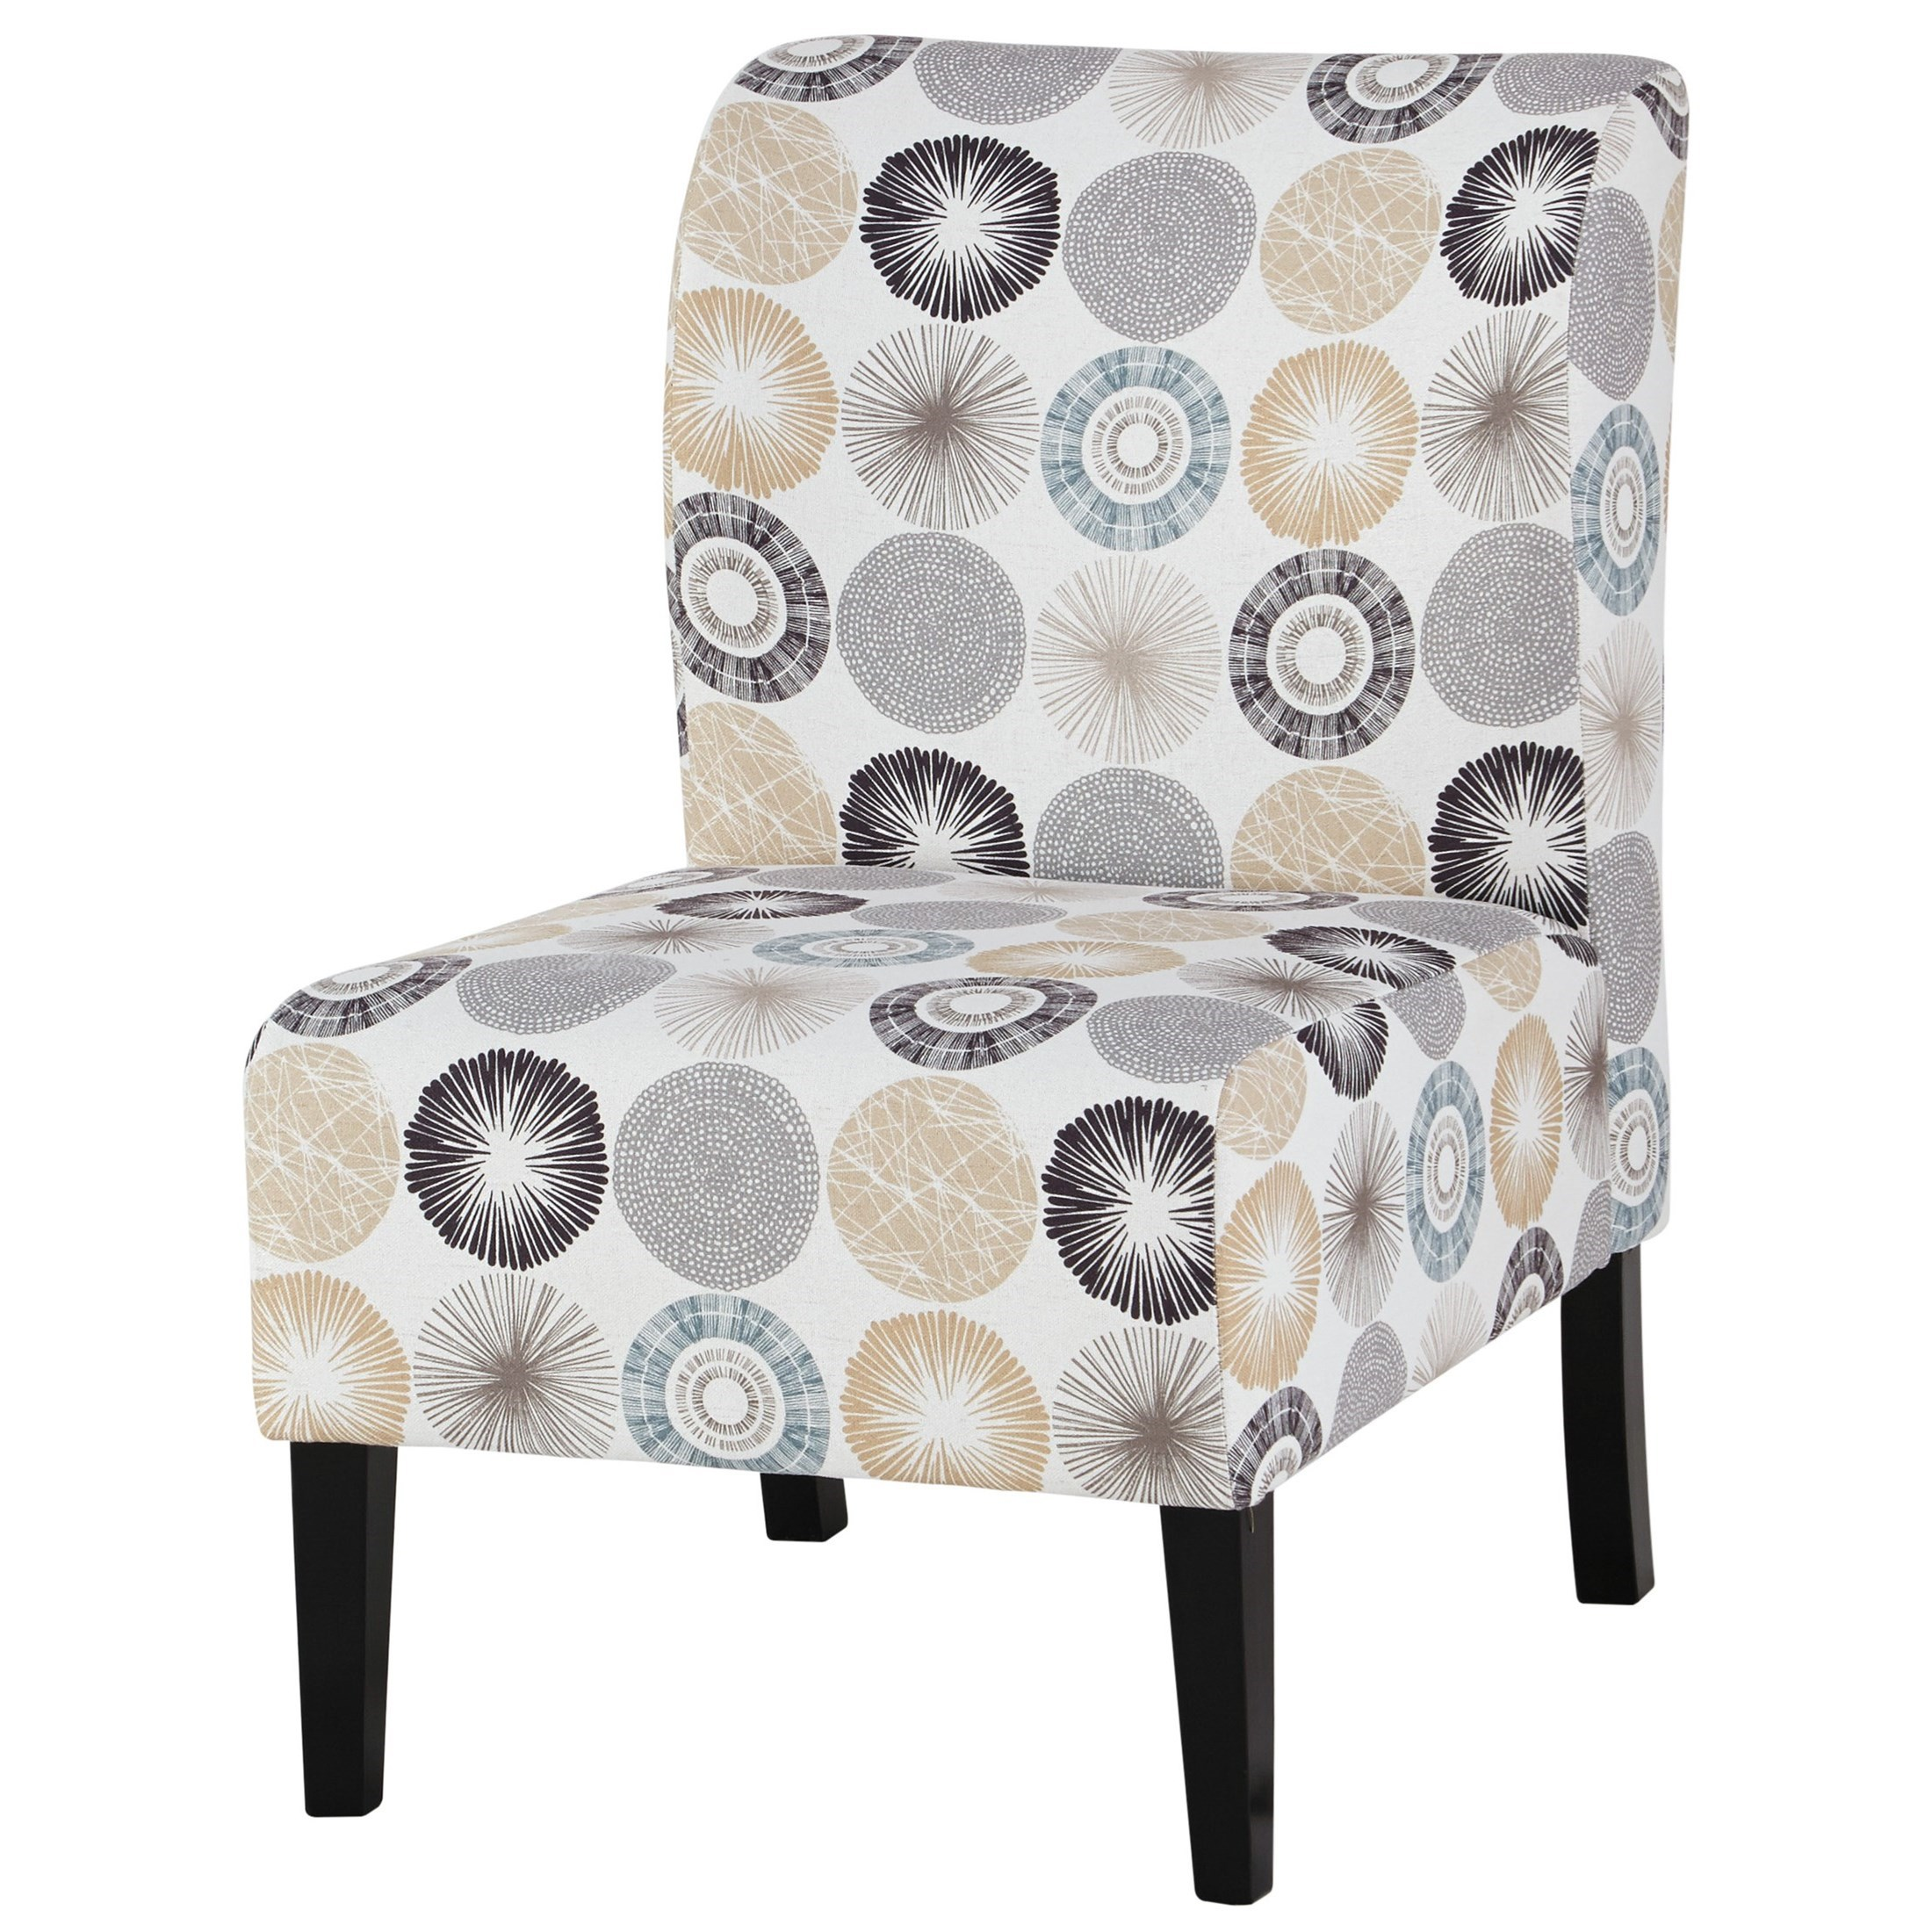 Triptis Accent Chair by Benchcraft at Virginia Furniture Market